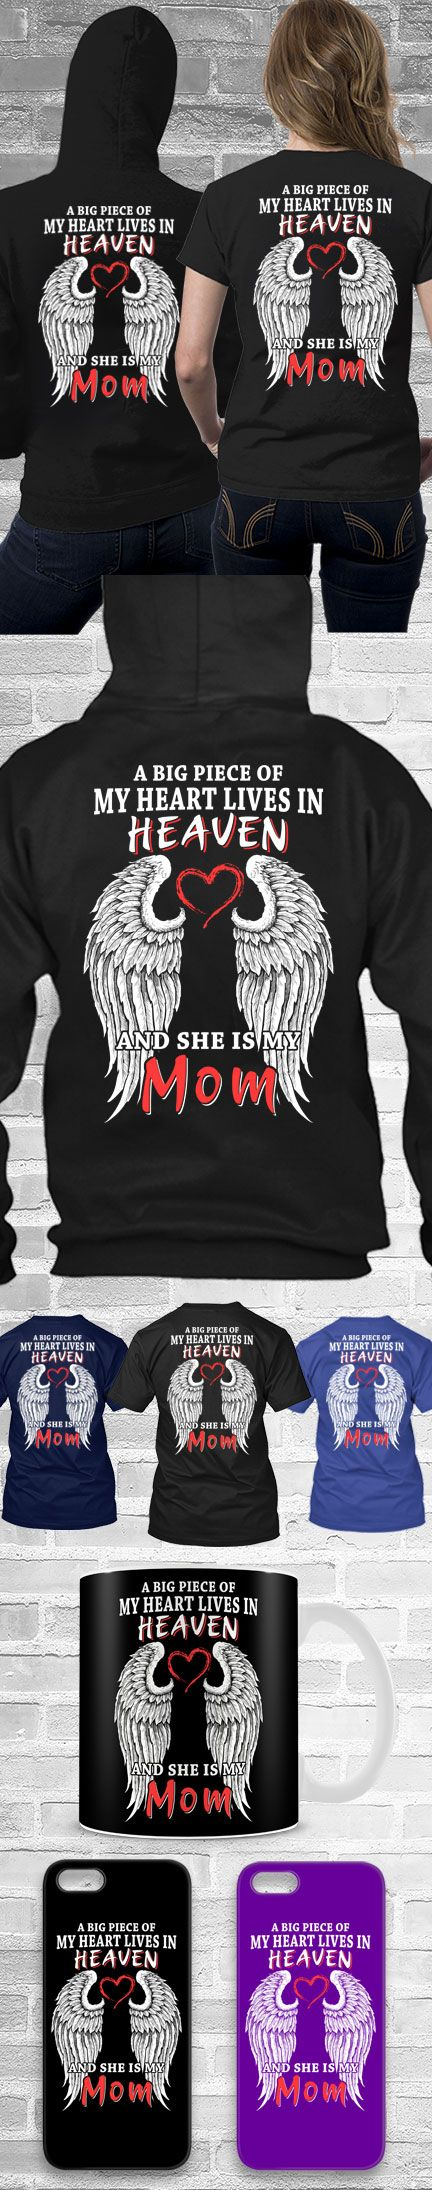 Big Piece In My Heart-Mom Shirt! Click The Image To Buy It Now or Tag Someone You Want To Buy This For.  #mominheaven